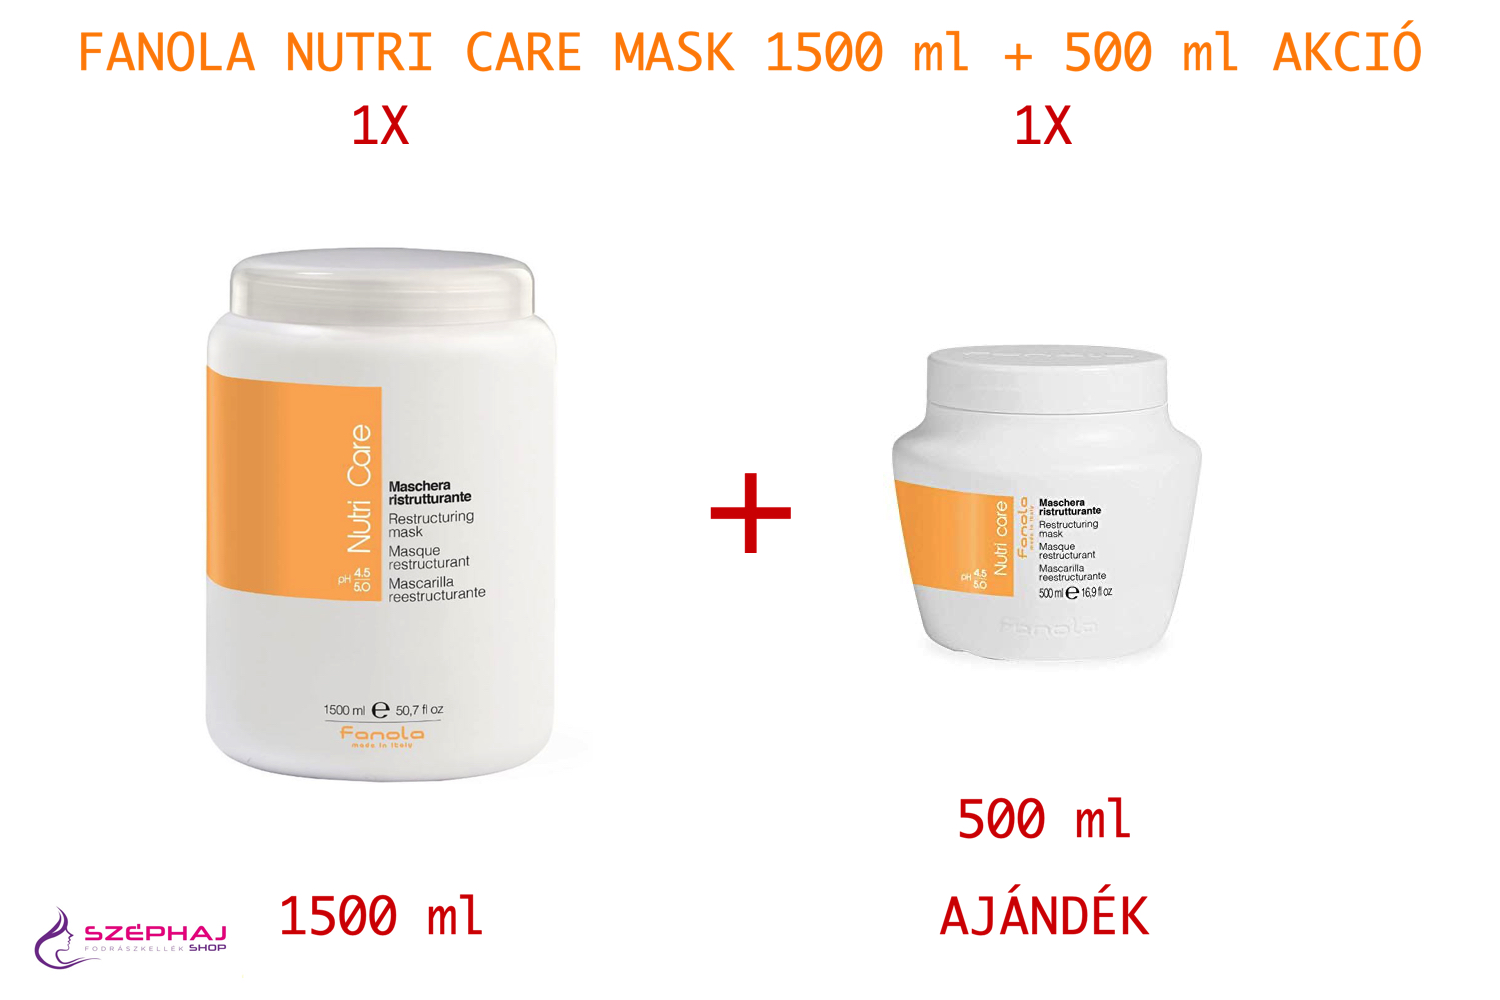 FANOLA Nutri Care Mask 1500 ml + 500 ml 1+1 AKCIÓ